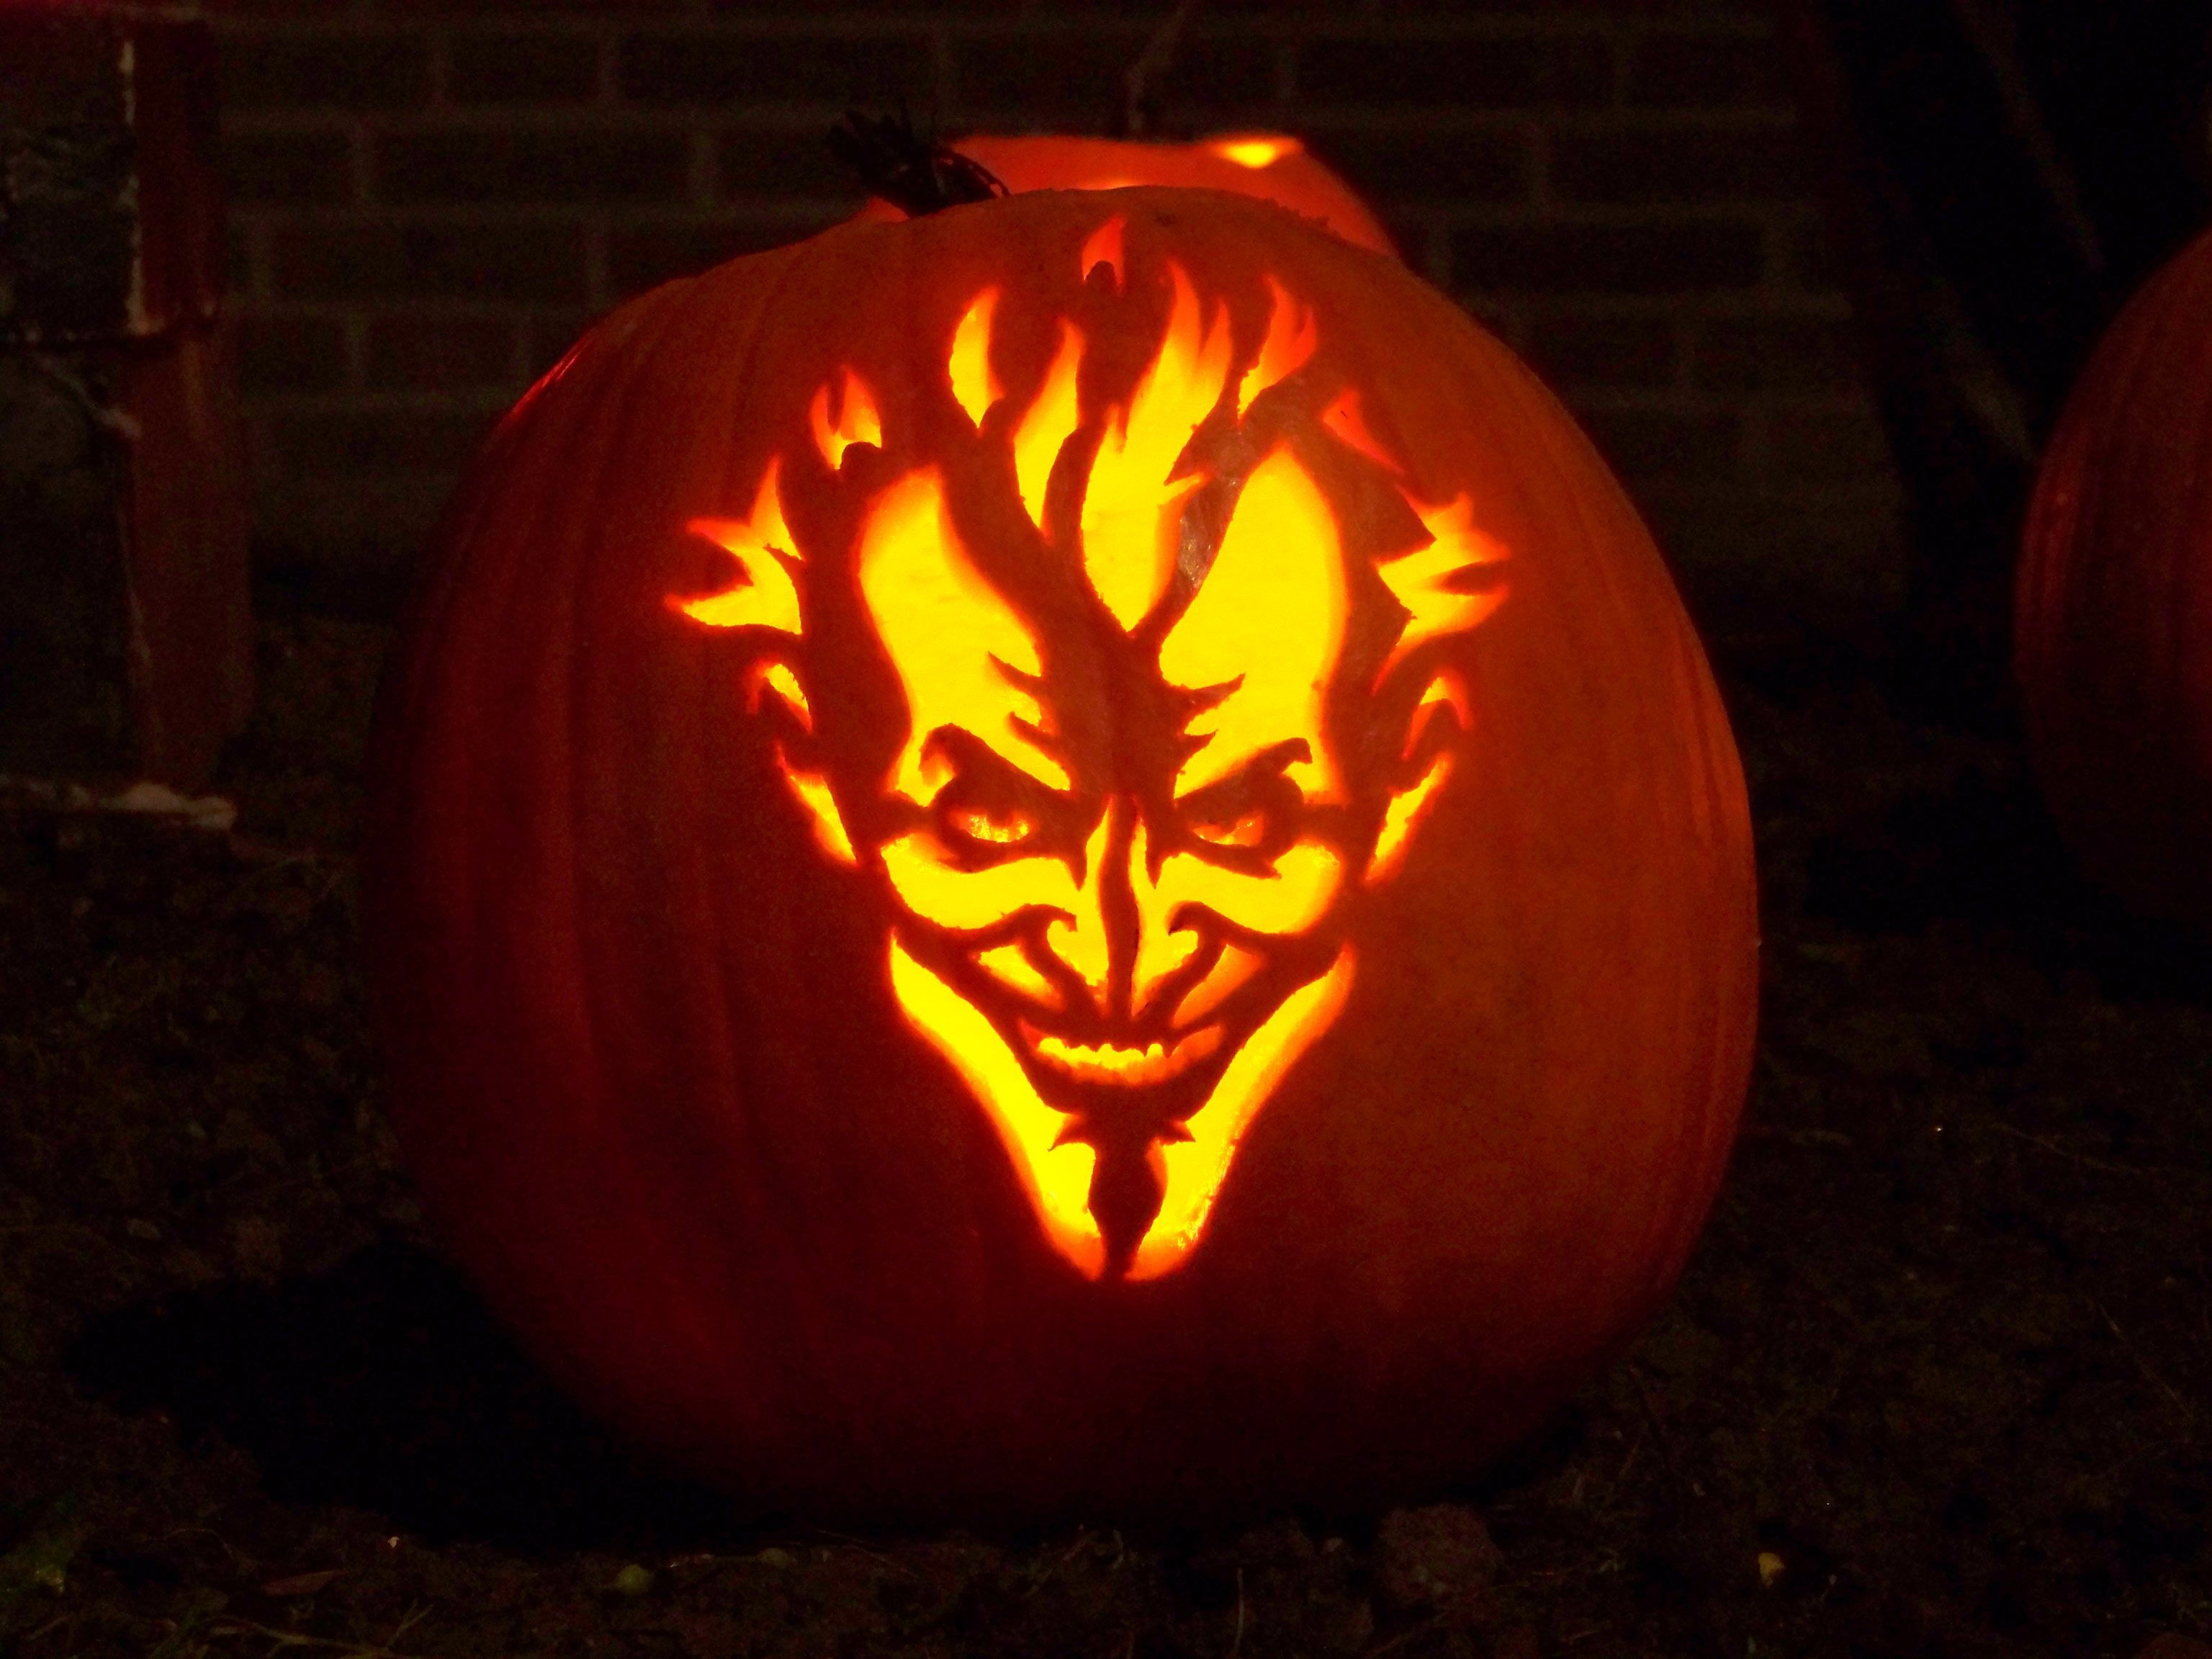 Joker pumpkin carving stencil pixshark images